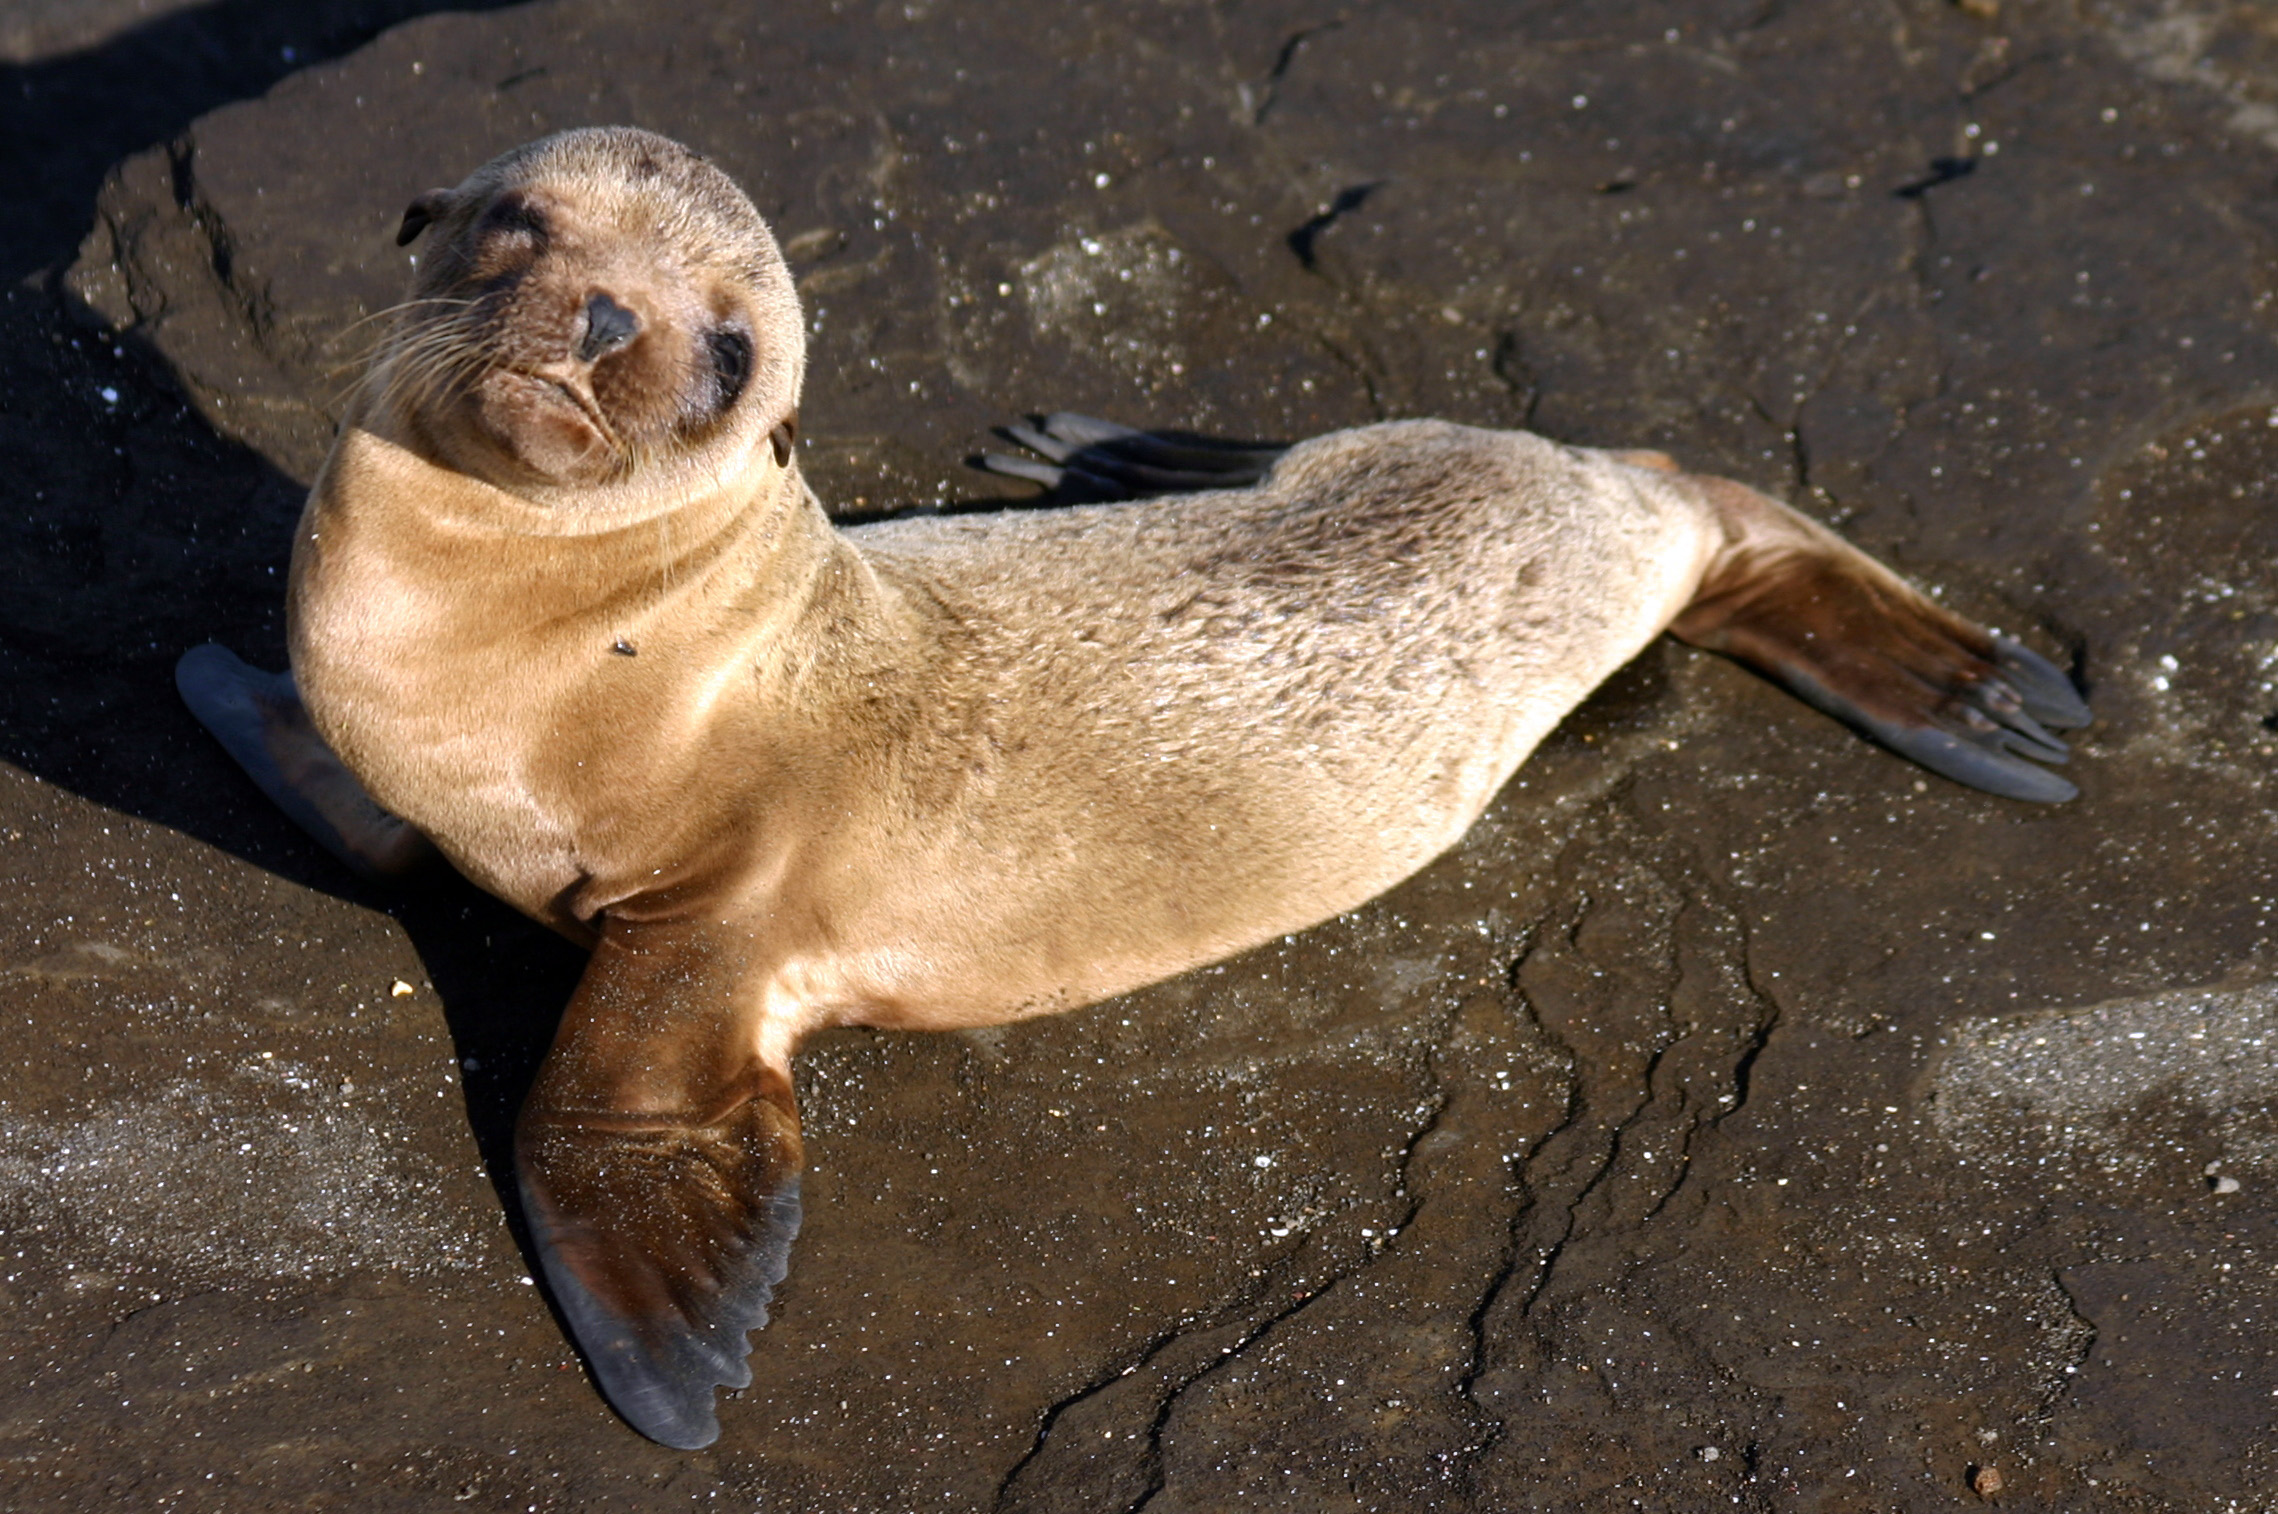 File:Galápagos baby sea lion.jpg - Wikimedia Commons